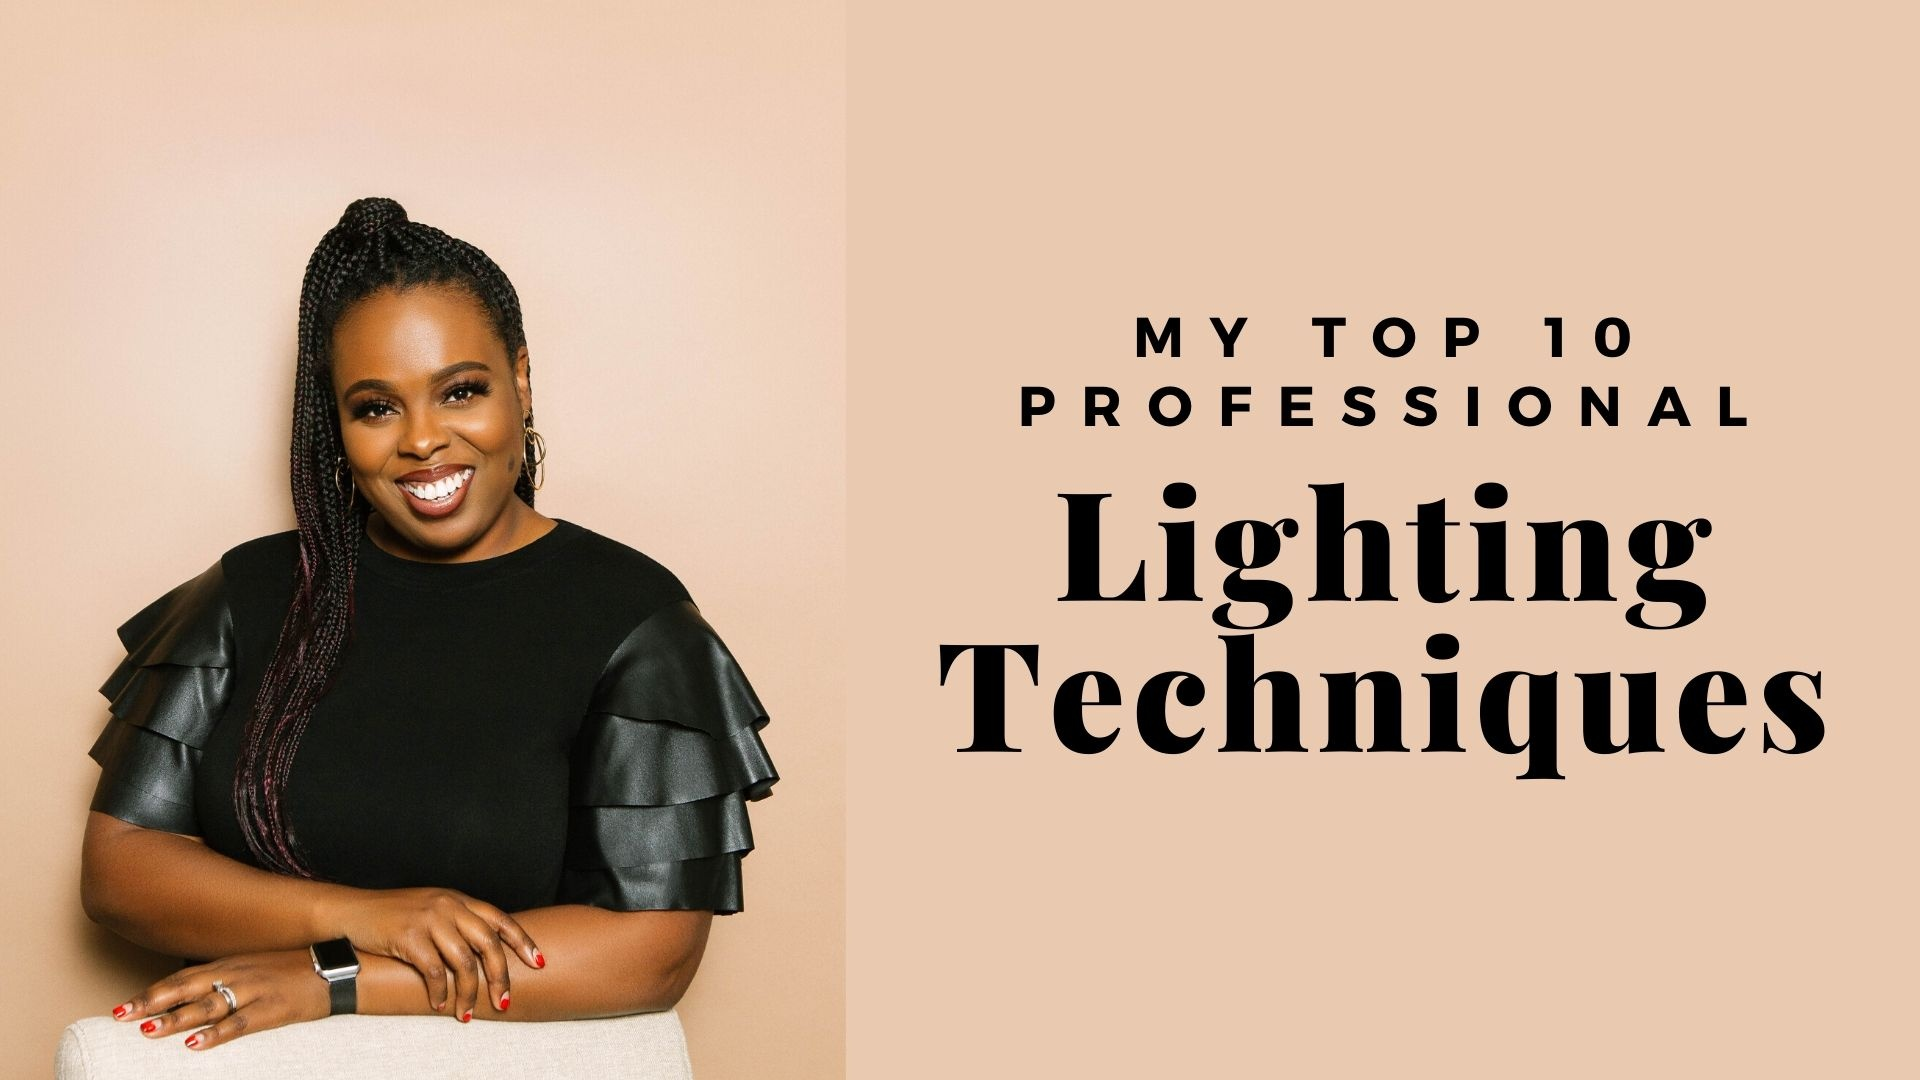 10 Lighting Techniques for Photographers